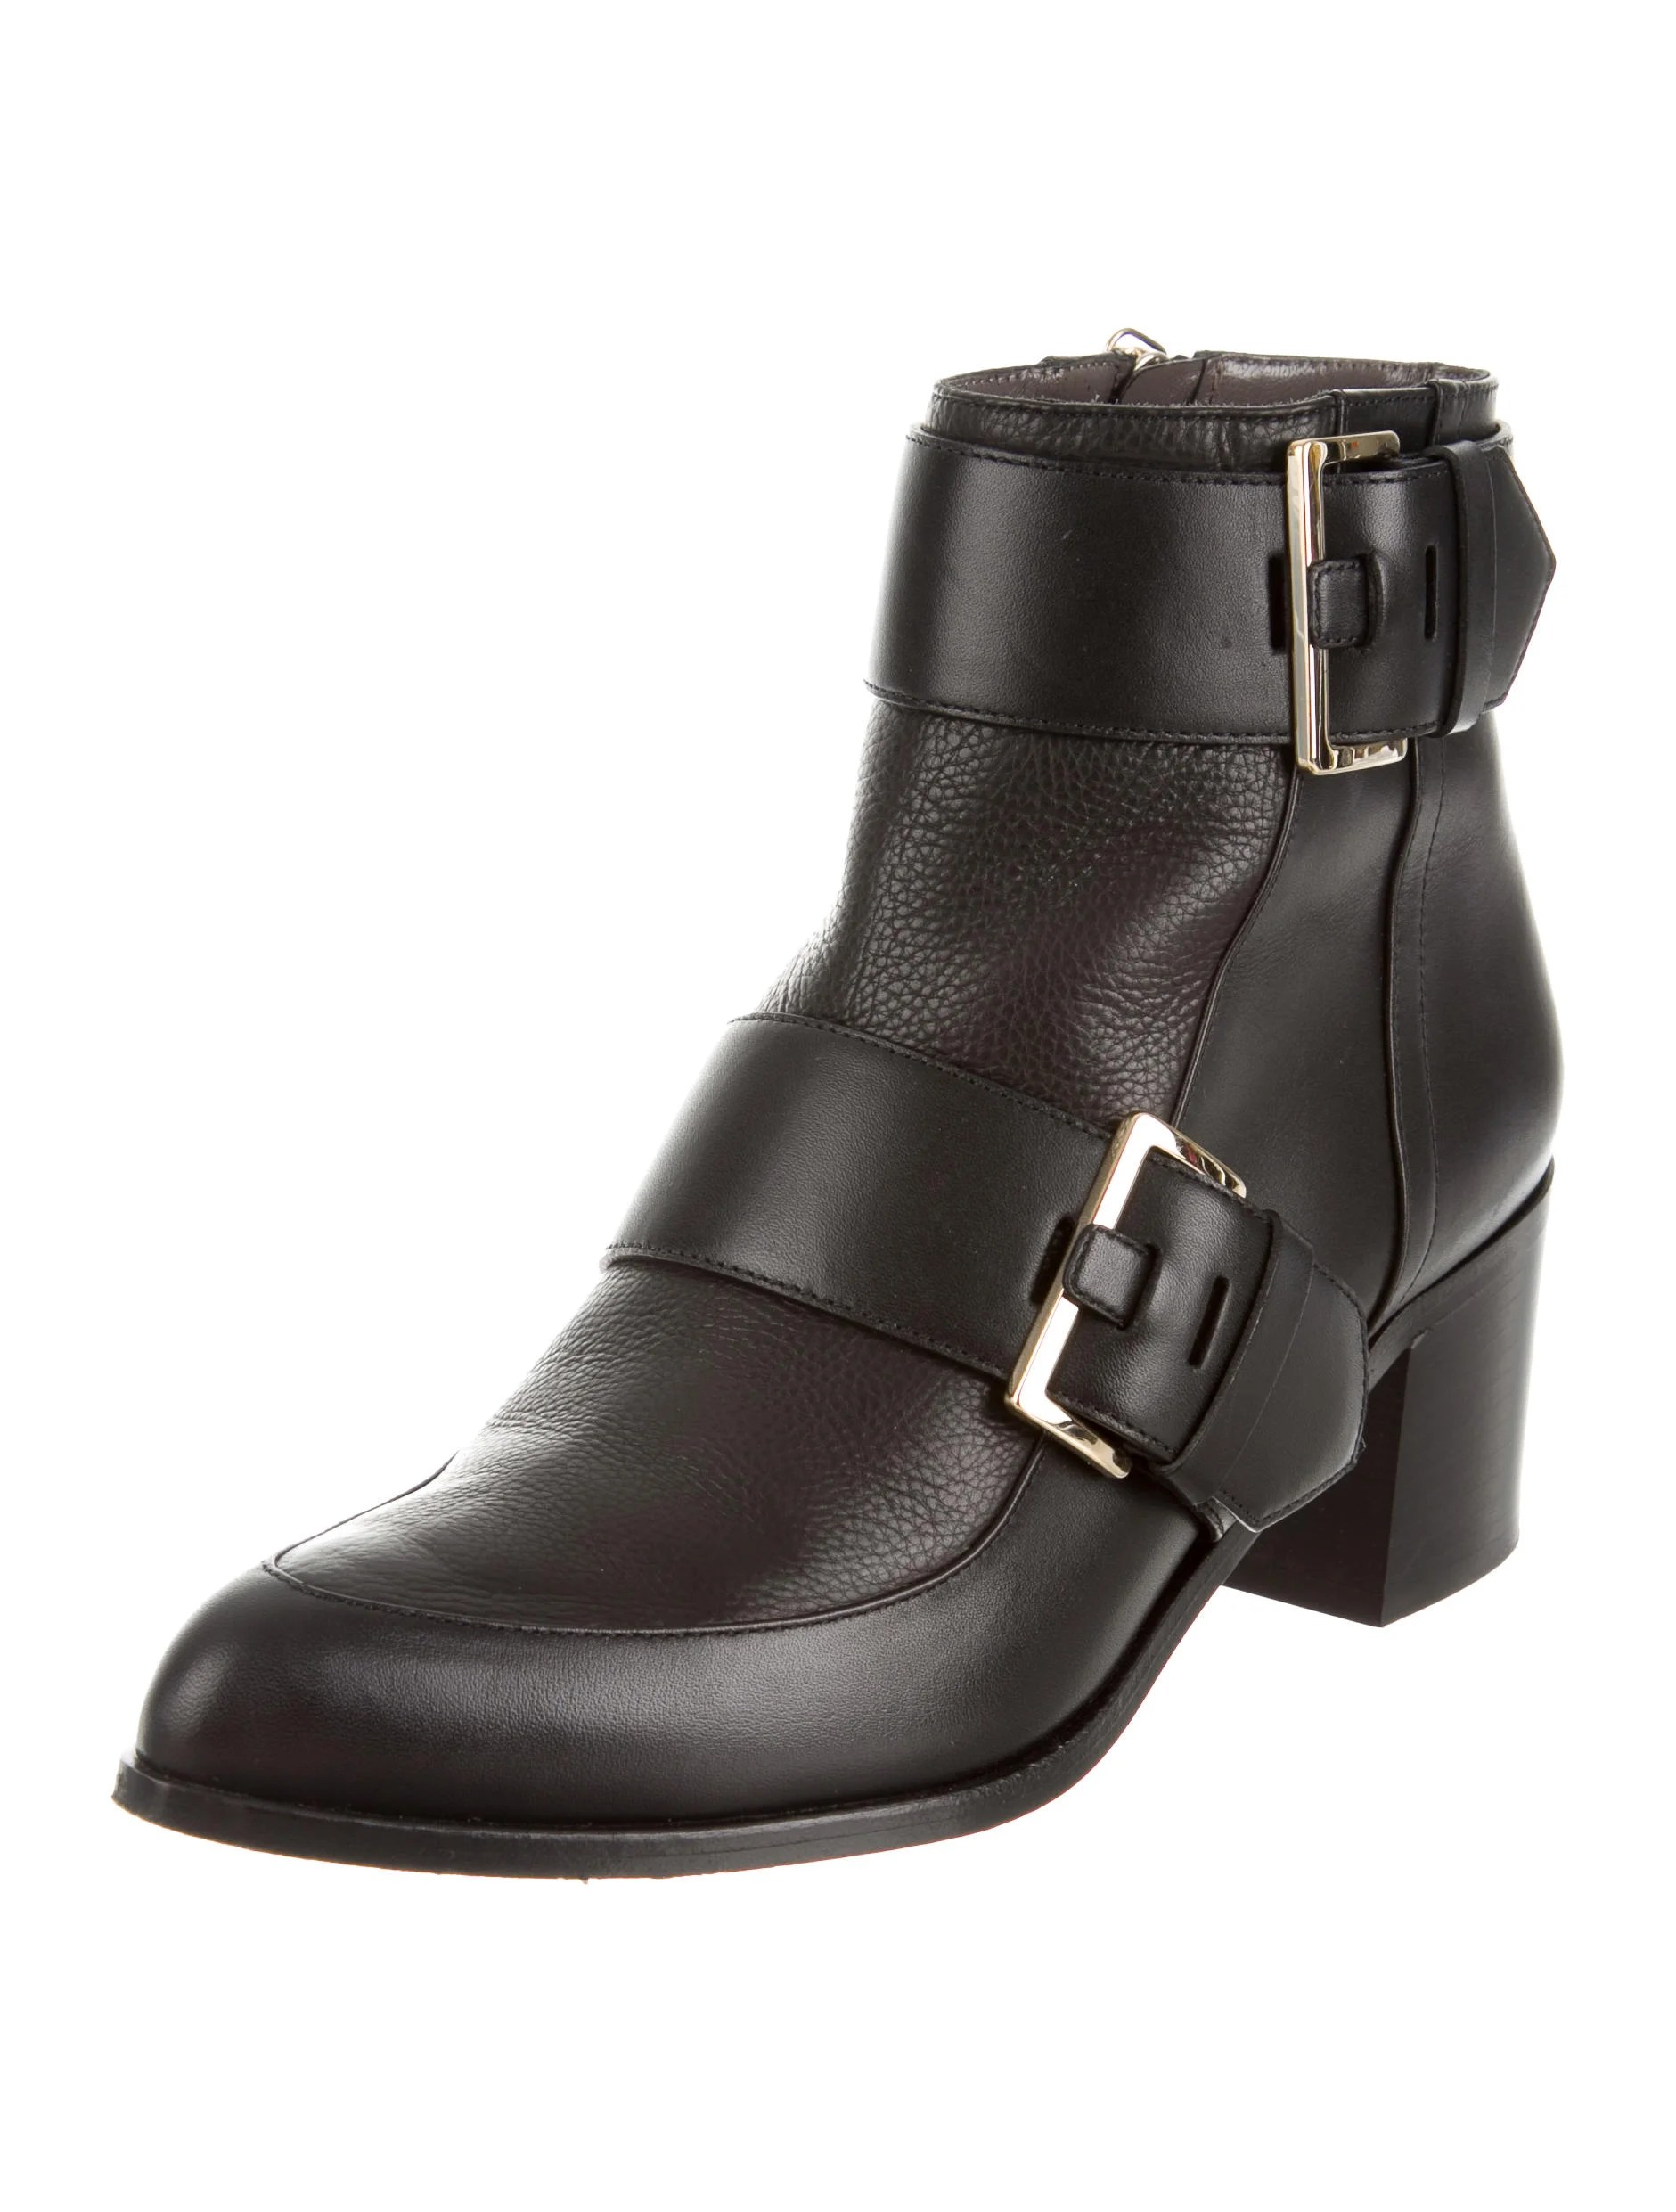 Jason Wu Pointed Toe Ankle Boots Shoes Jas21667 The